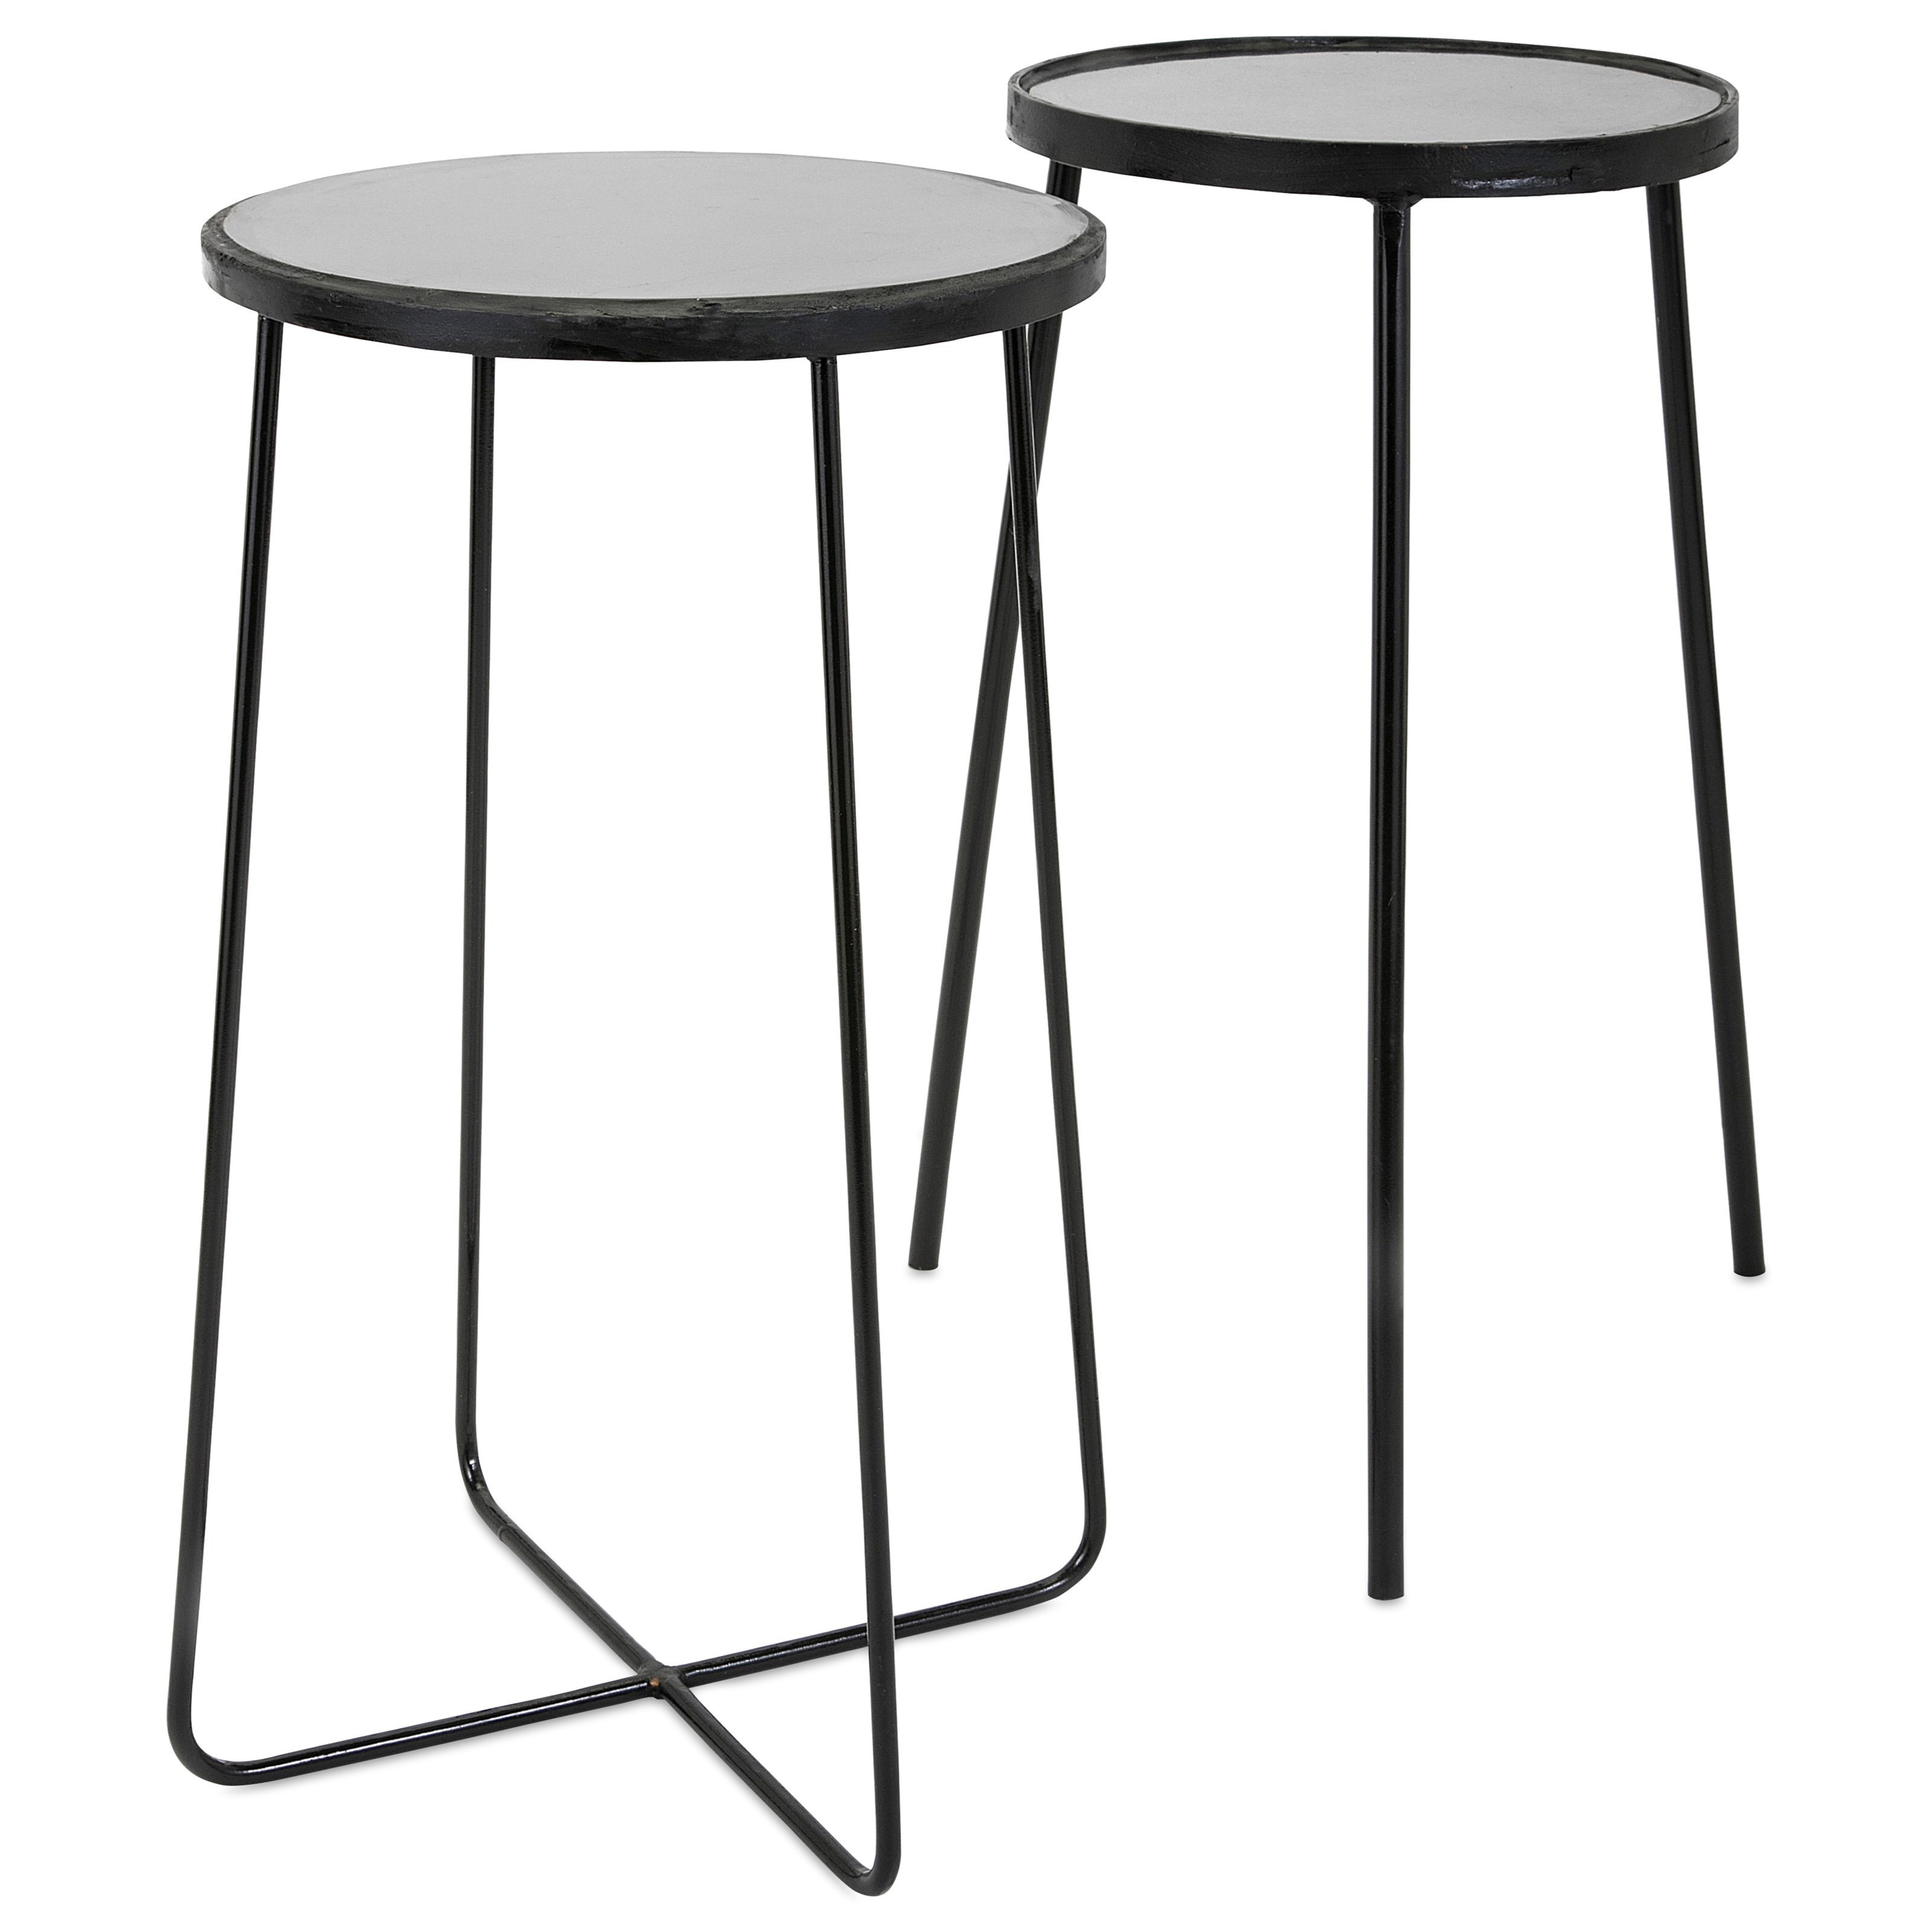 Accent Tables and Cabinets Berke Iron and Marble Tables - Set of 2 by IMAX Worldwide Home at Alison Craig Home Furnishings